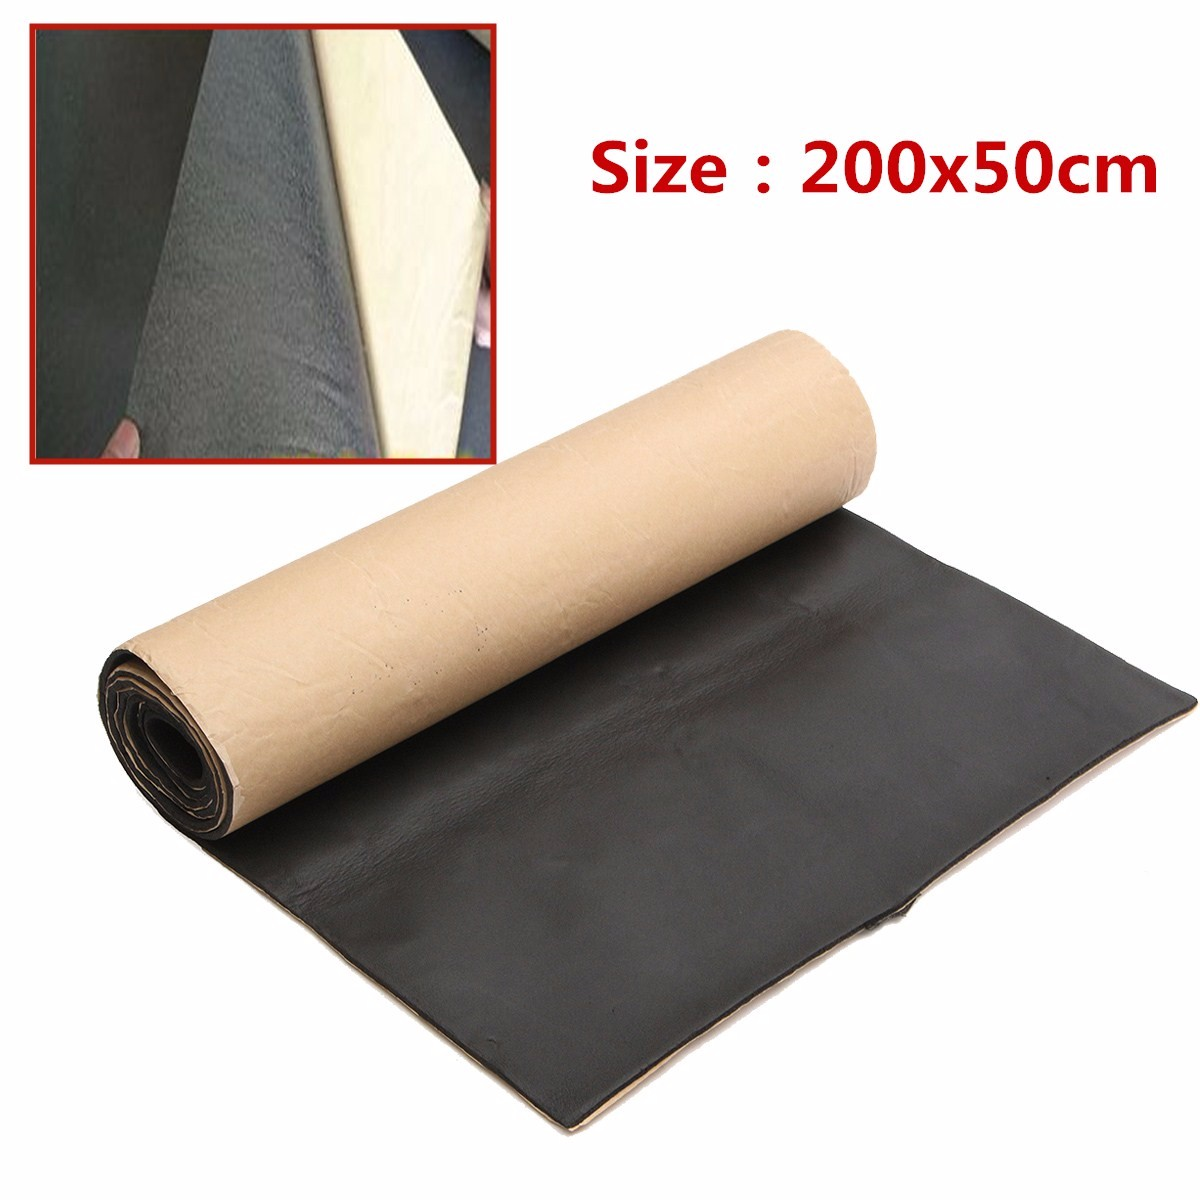 Closed Cell Foam Mat 200cmx50cm Car Sound Proofing Deadening Anti Noise Sound Insulation Cotton Heat Closed Cell Foam